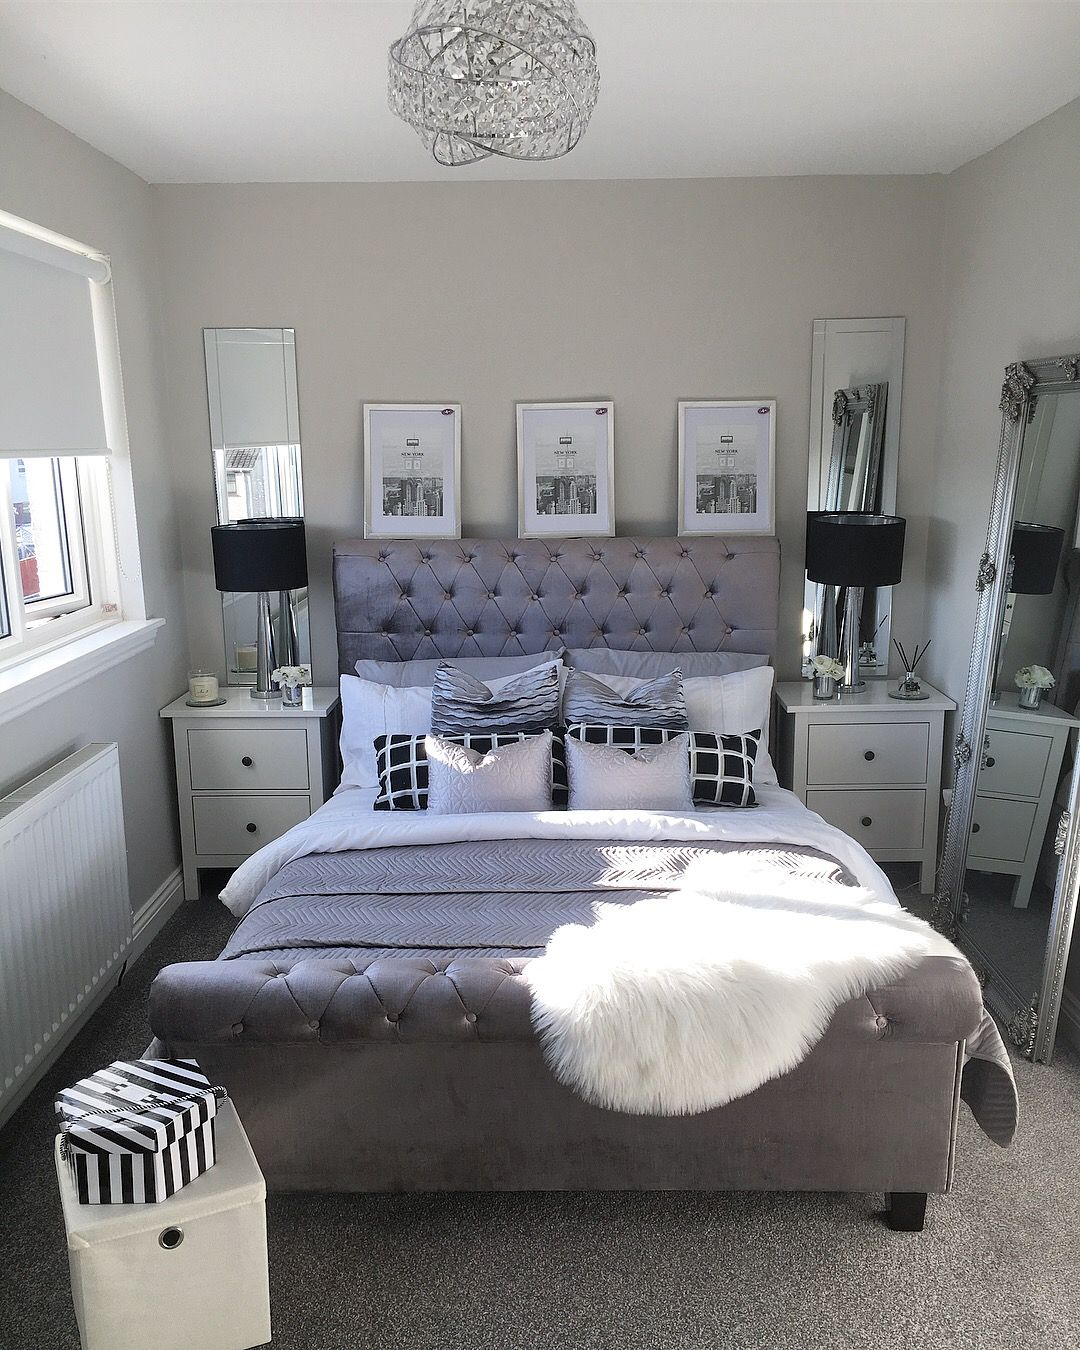 Master bedroom inspo goals pictures above bed mirrored bedside